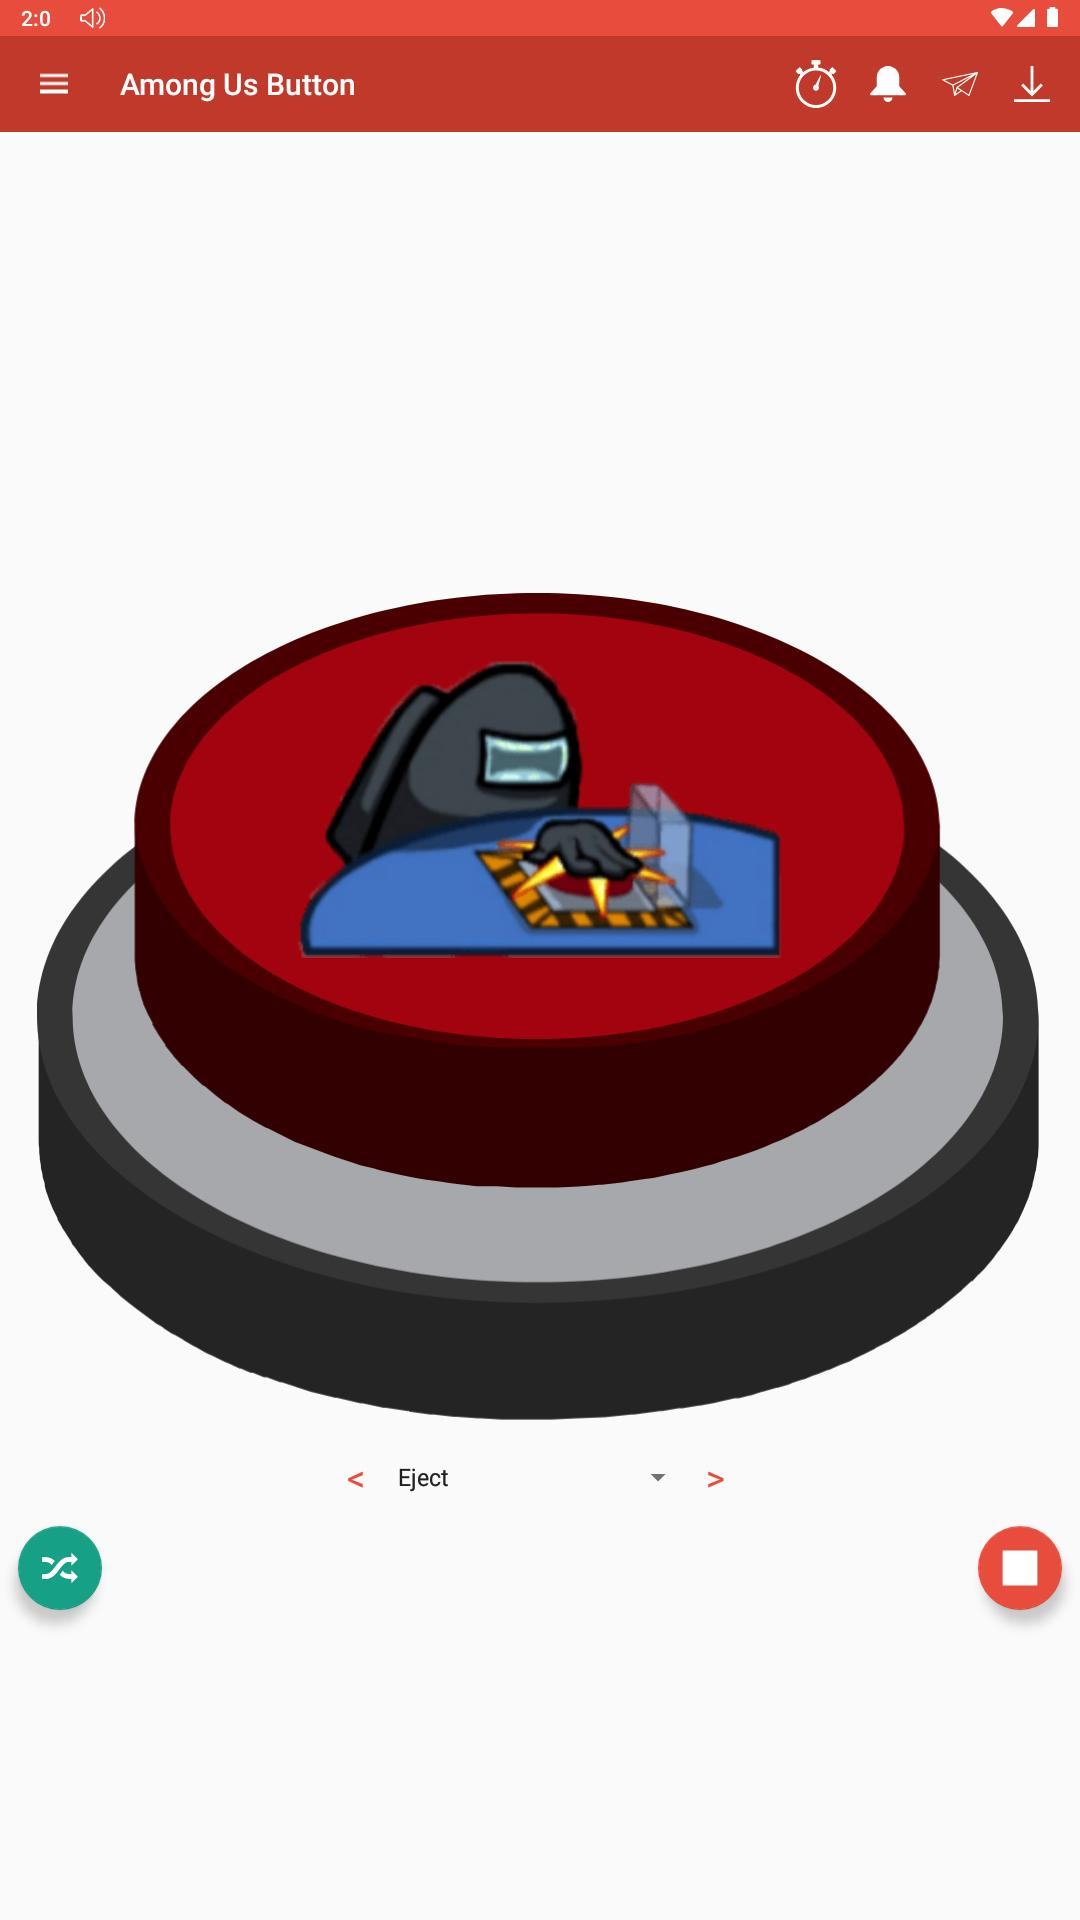 Emergency Meeting Button For Among Us Para Android Apk Baixar